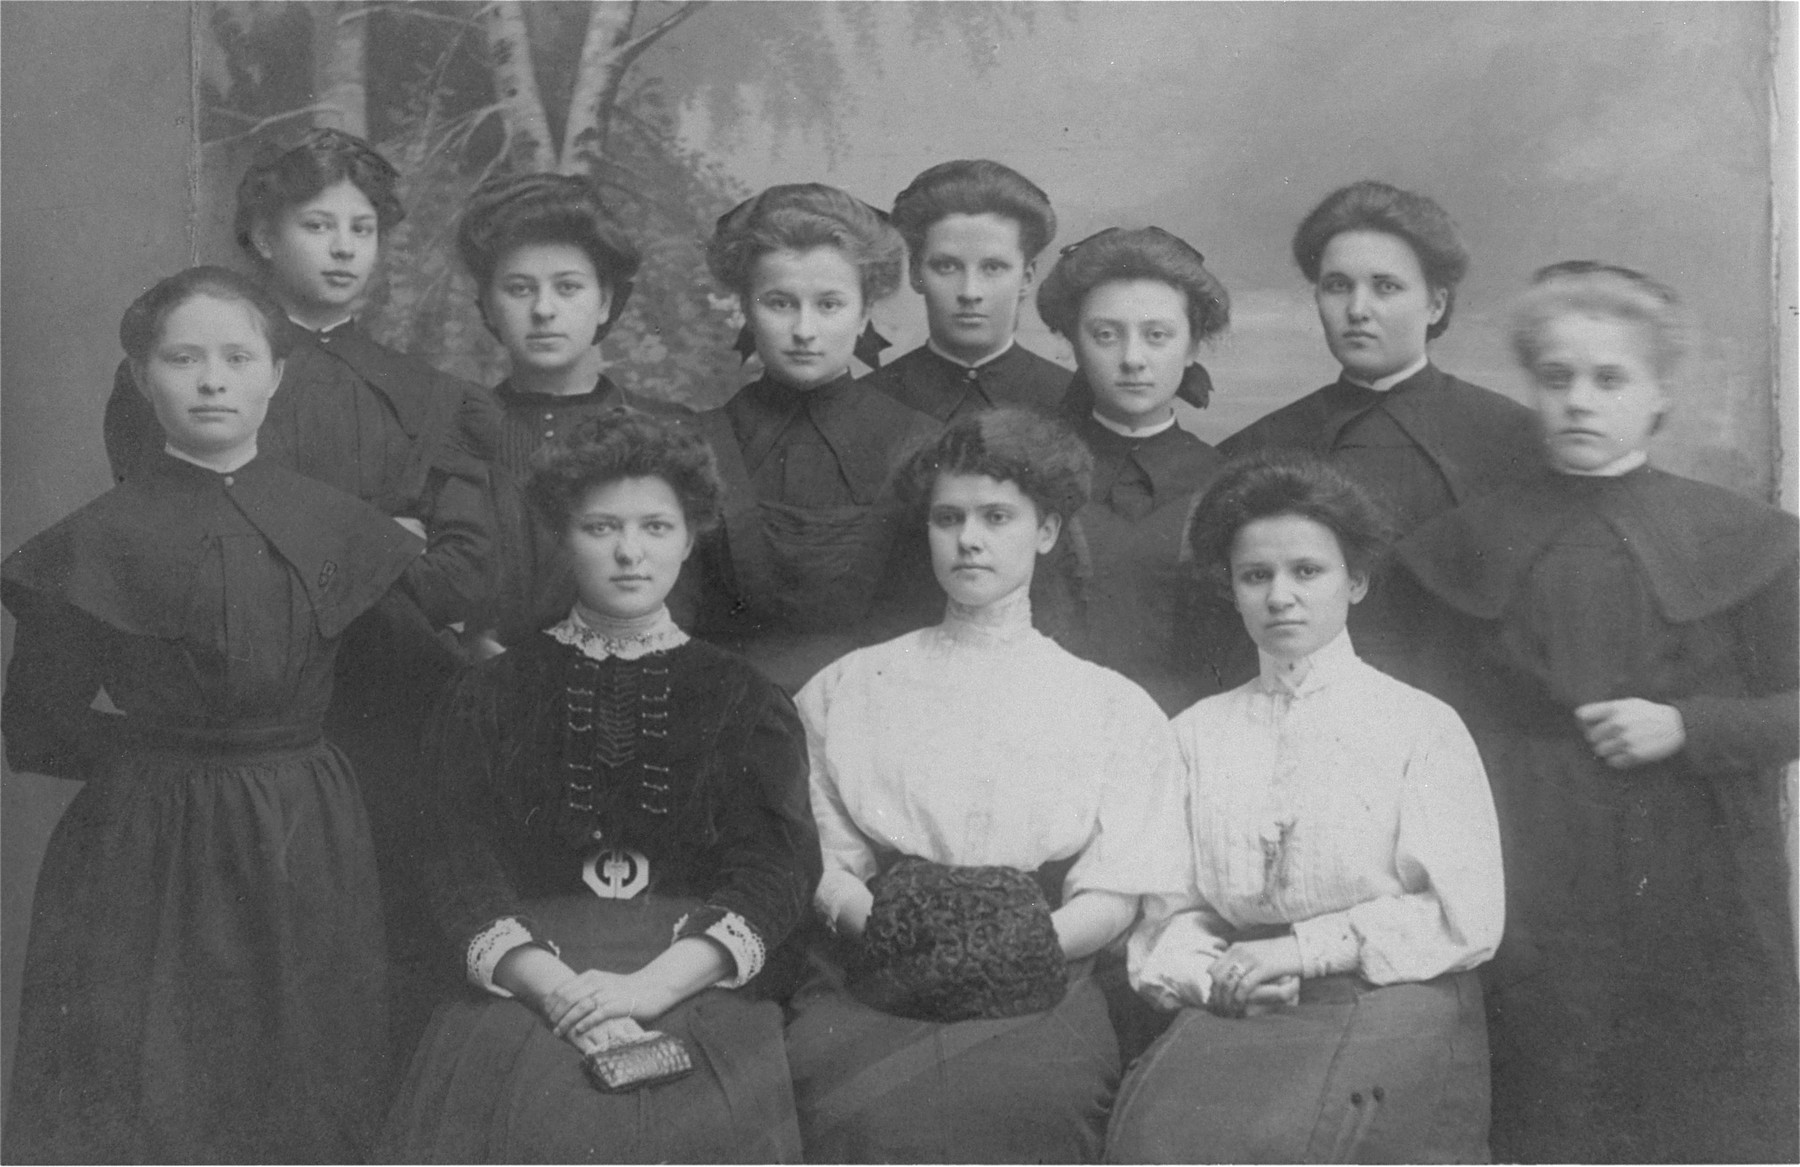 Group portrait of young women in the gymnasium for Deaf students.  The donor's mother, Rebeka Jaglom Wajcblum, is standing in the back row, third from the left.